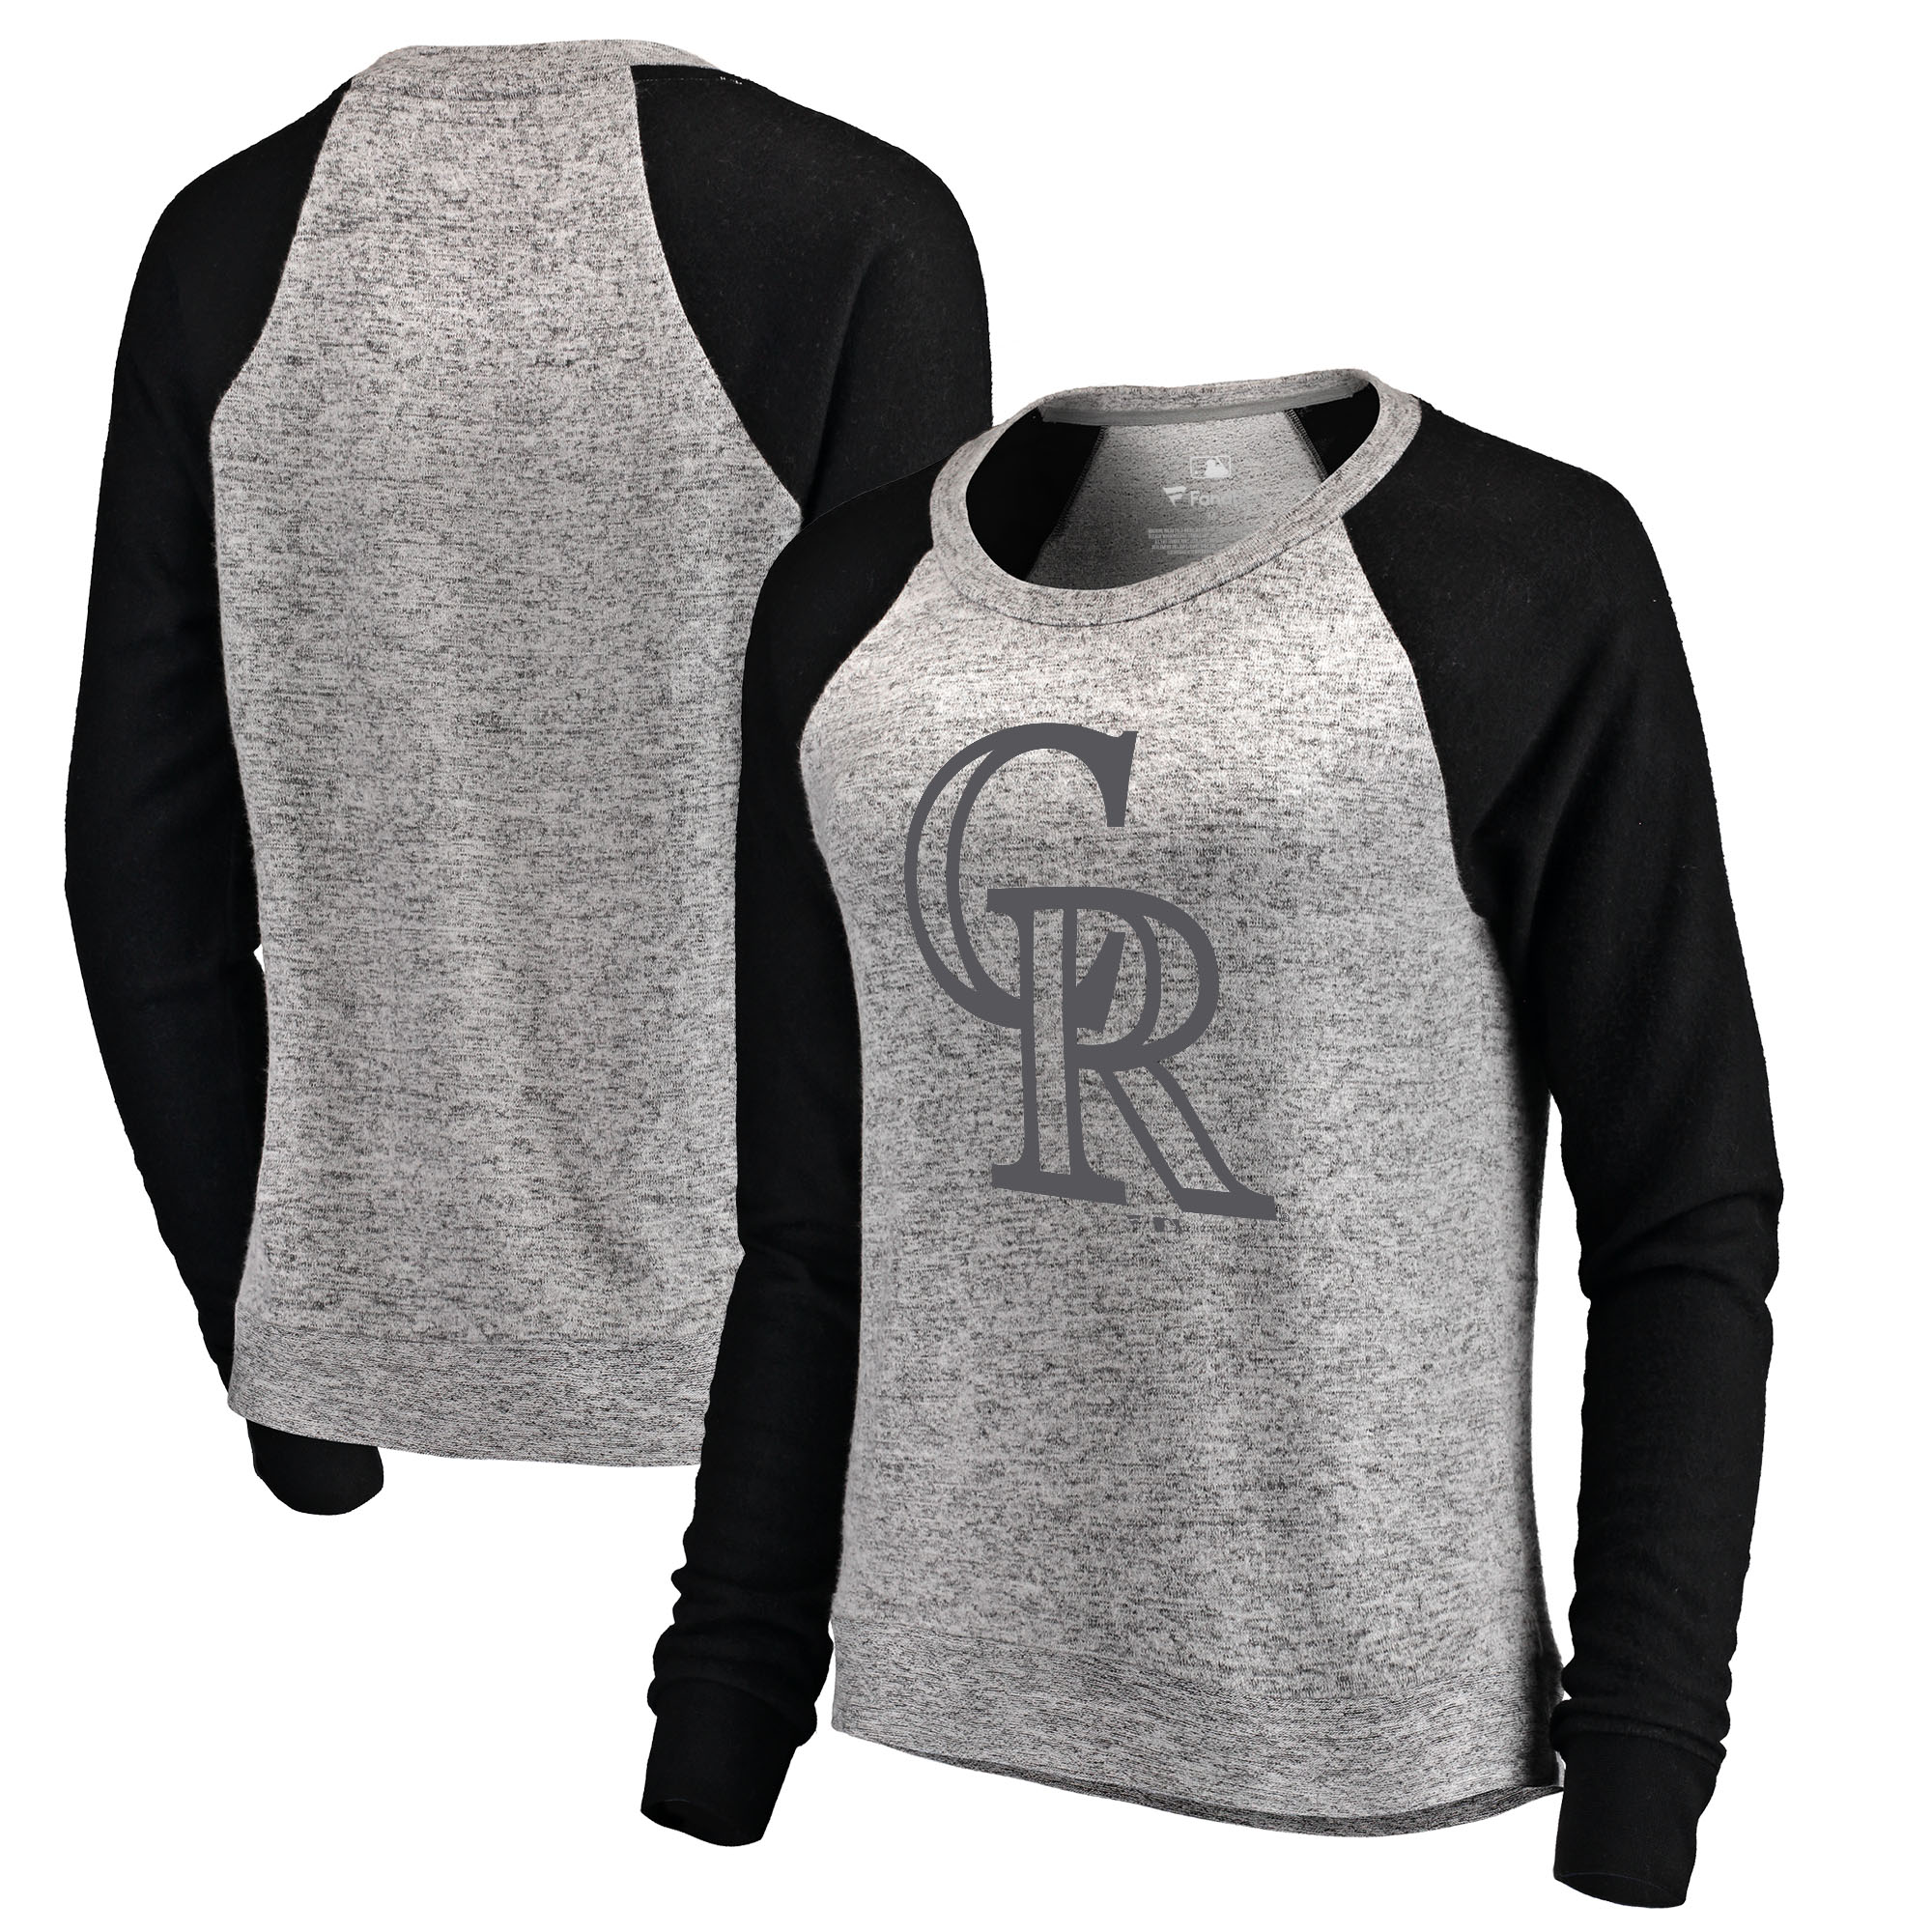 Colorado Rockies Let Loose by RNL Women's Cozy Collection Plush Raglan Tri-Blend Sweatshirt - Ash